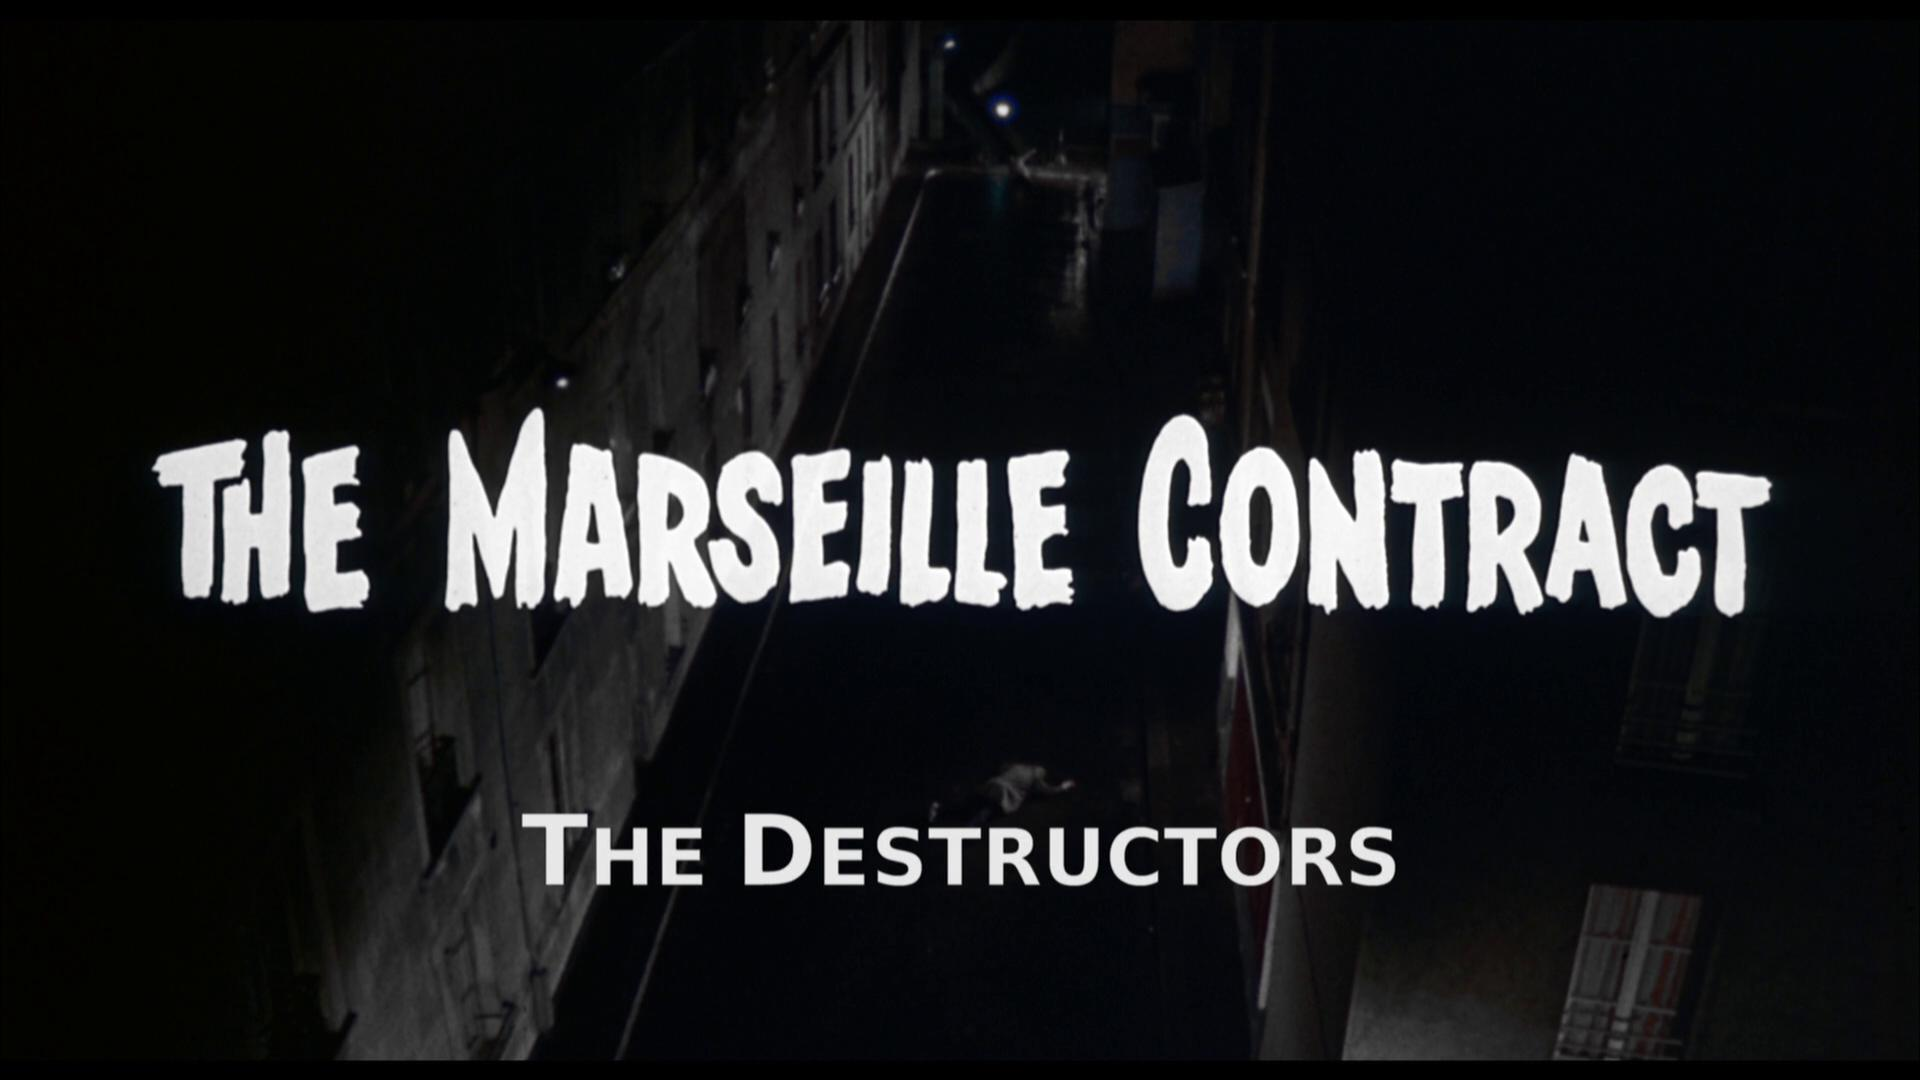 review the destructors The destructors is a 1954 short story written by graham greene, first published in picture post and subsequently collected in twenty-one stories later that year .